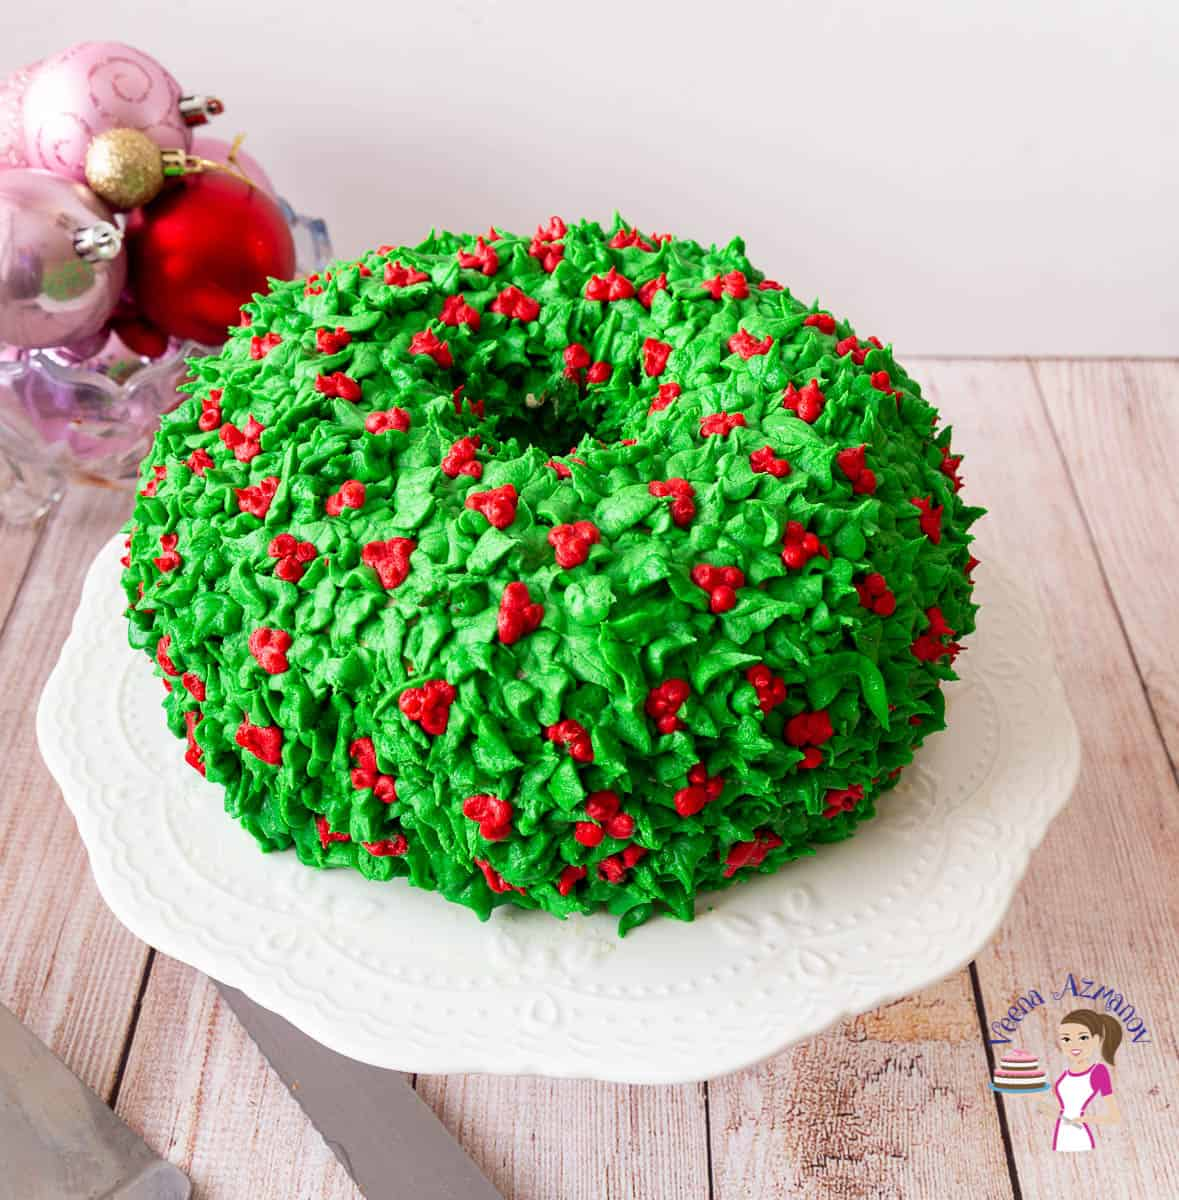 A frosted Christmas cake on a cake stand